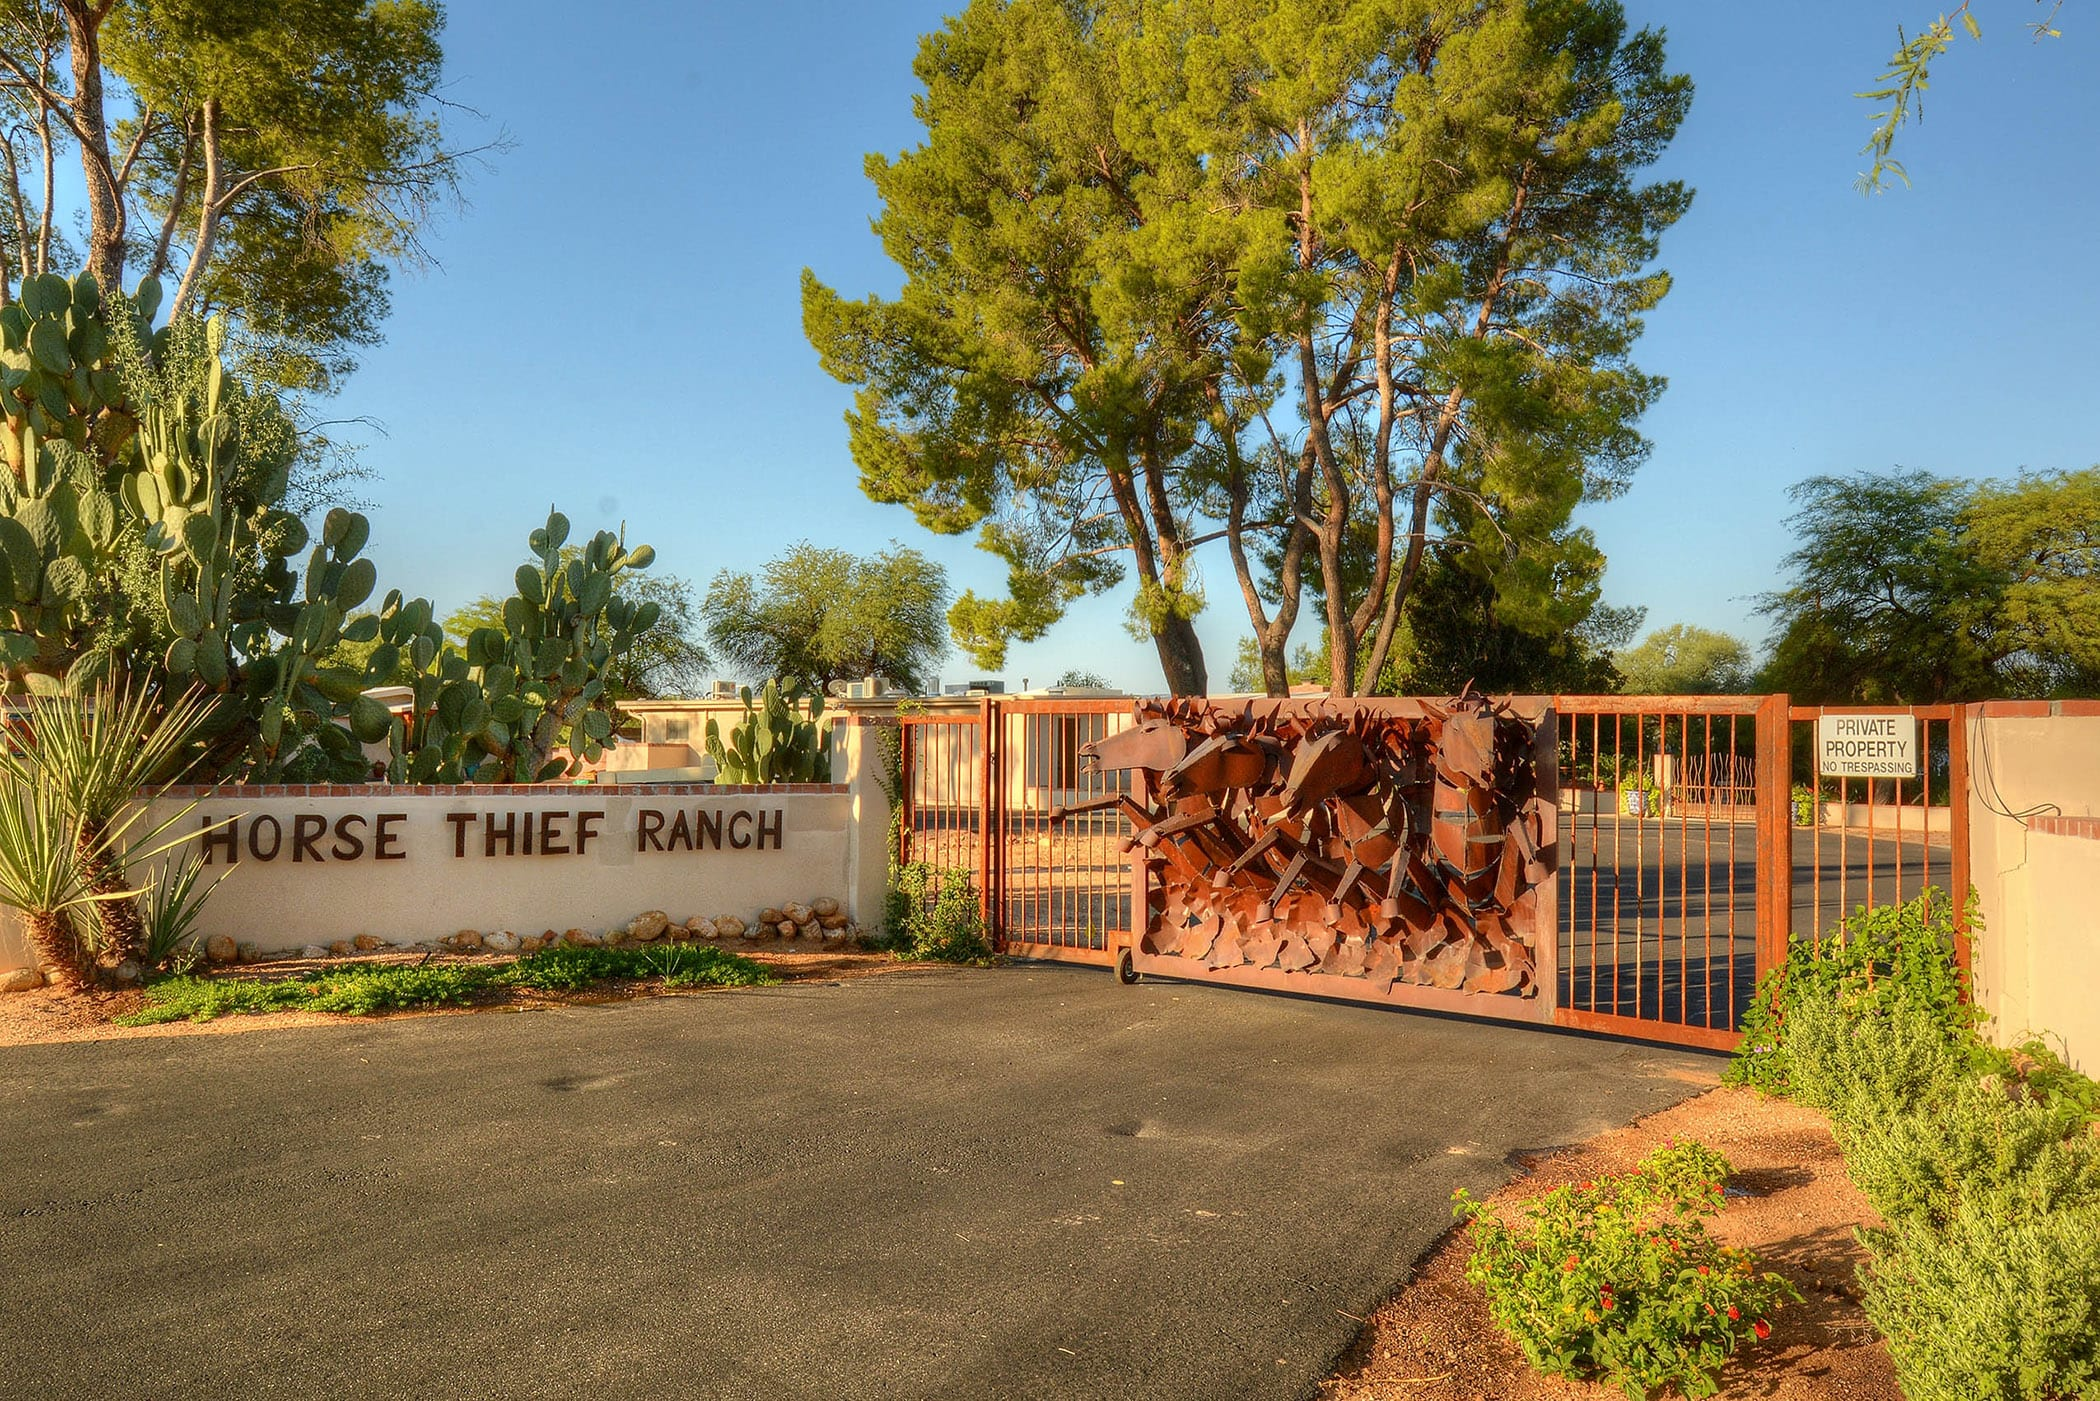 The ranch is gated for your security and privacy.